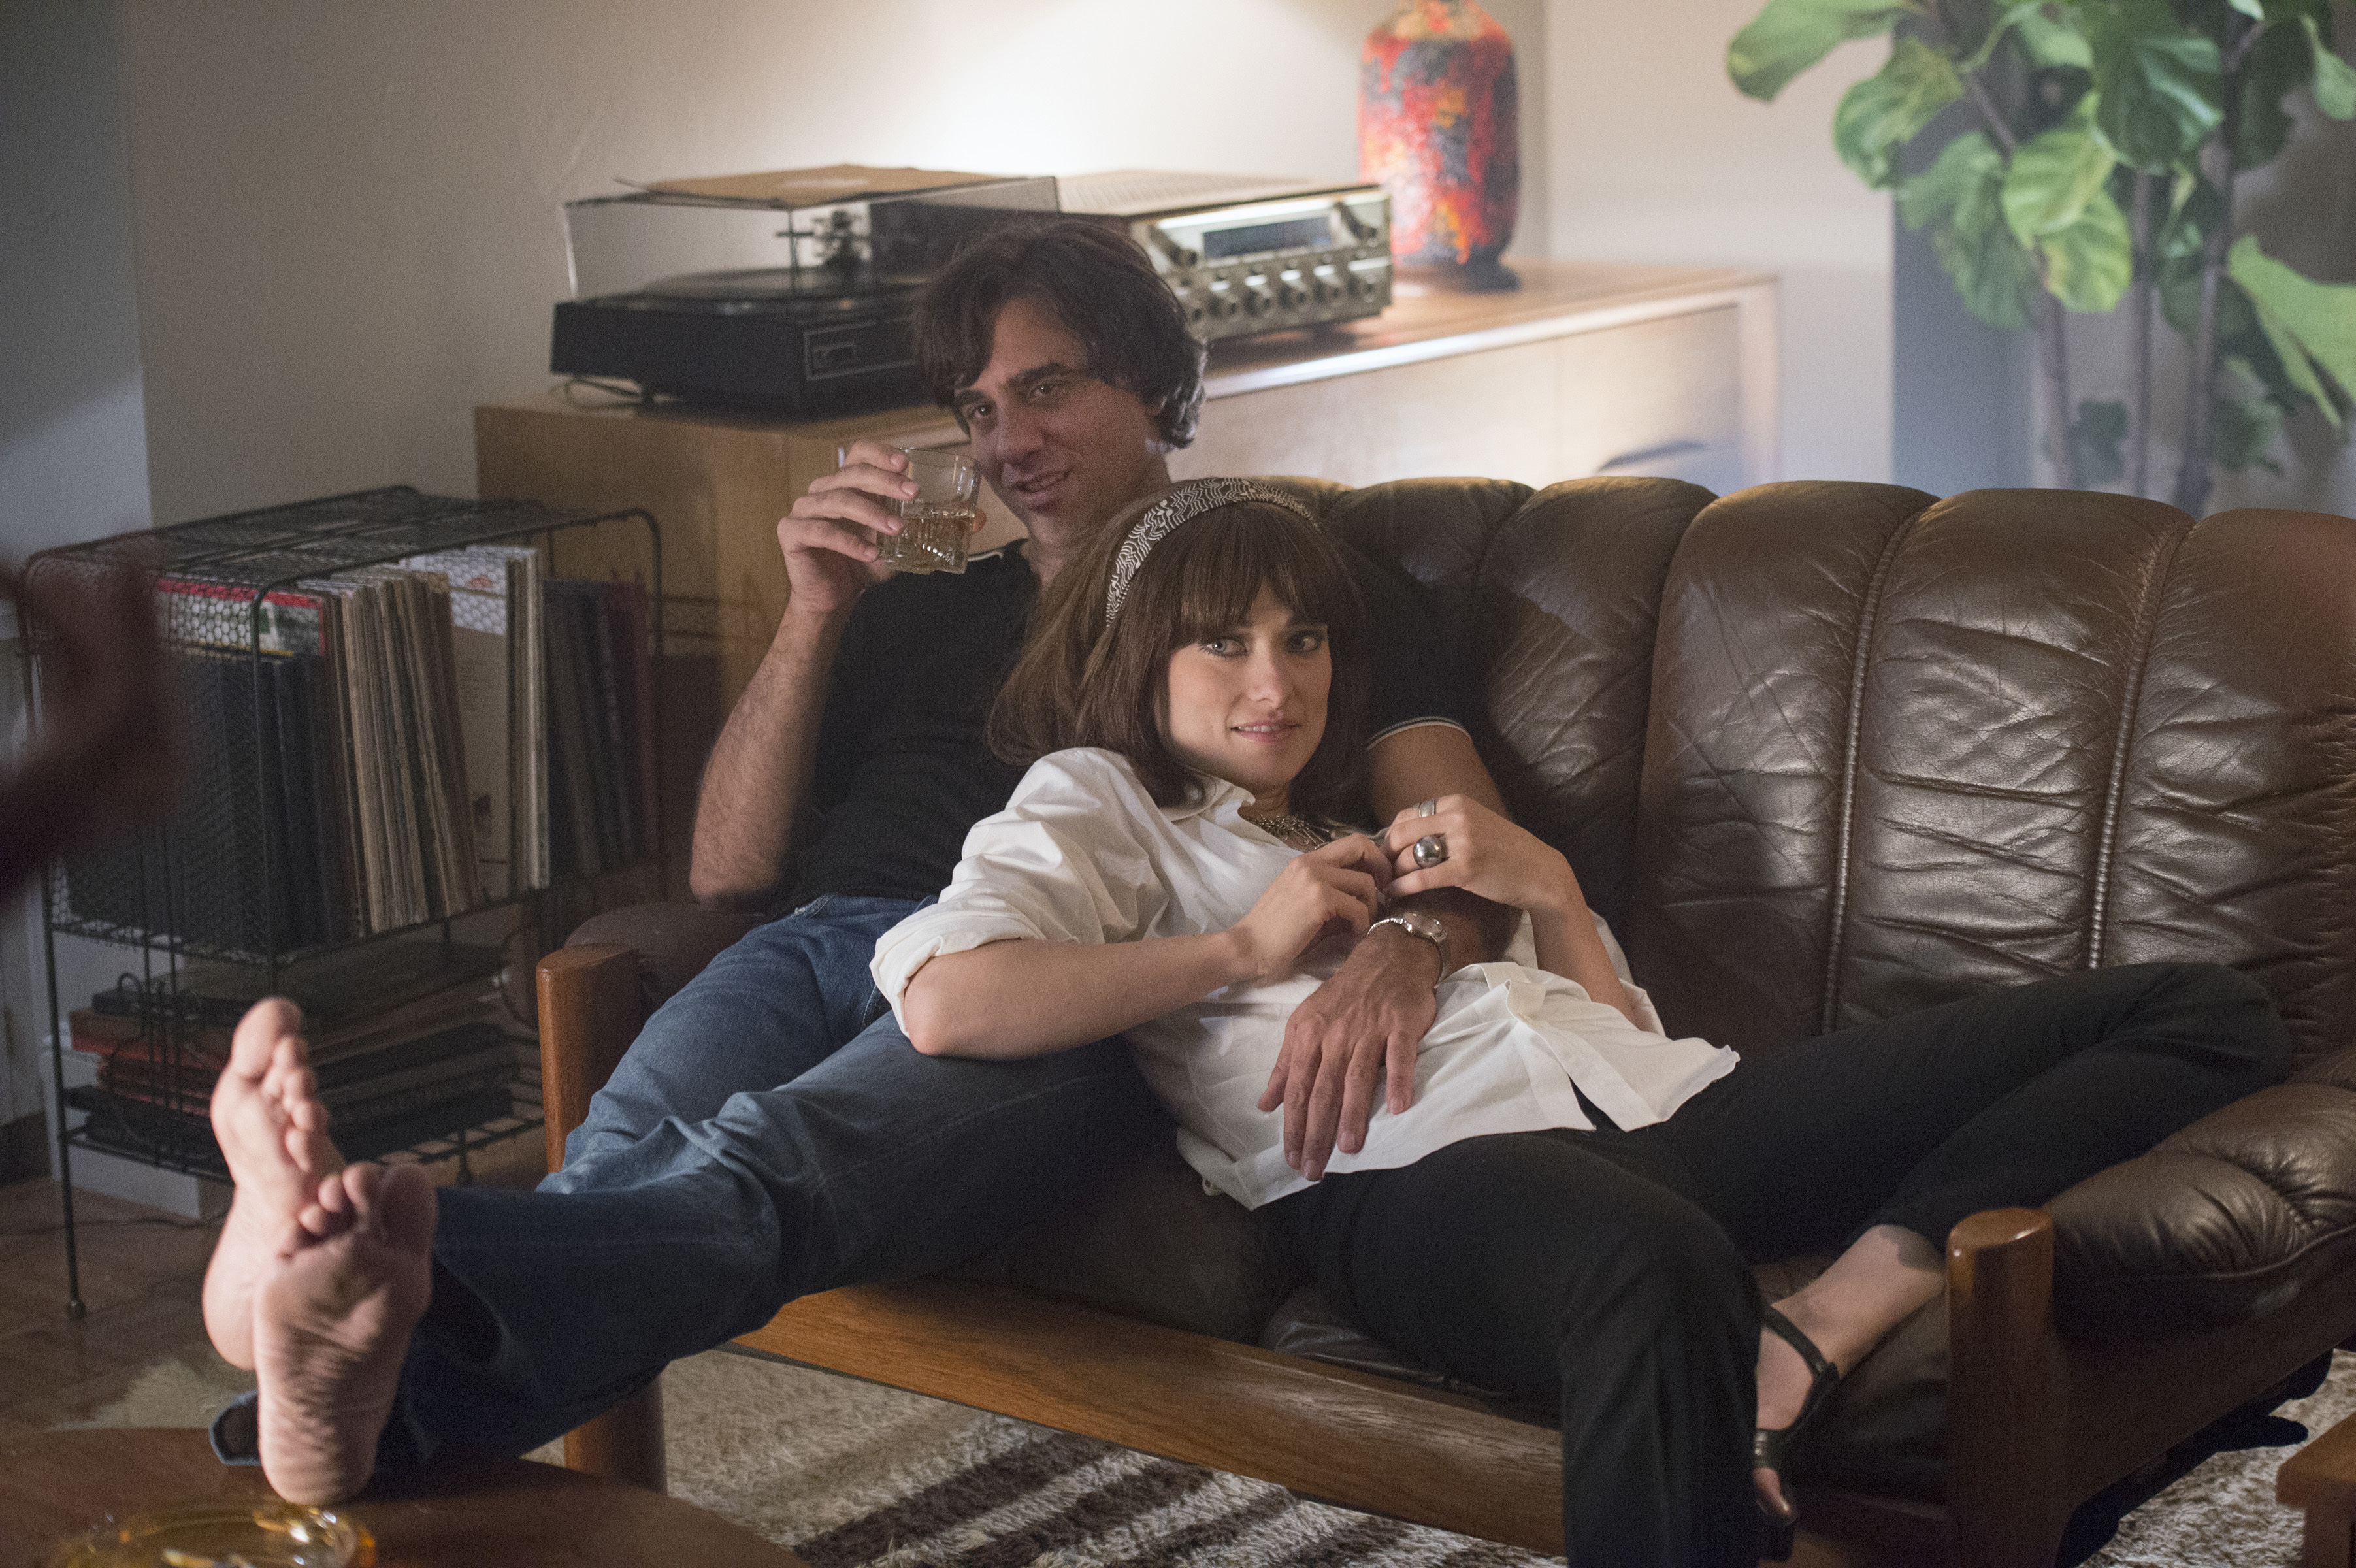 Milch Auf Couch Hbo Cancels Vinyl After One Season Rolling Stone